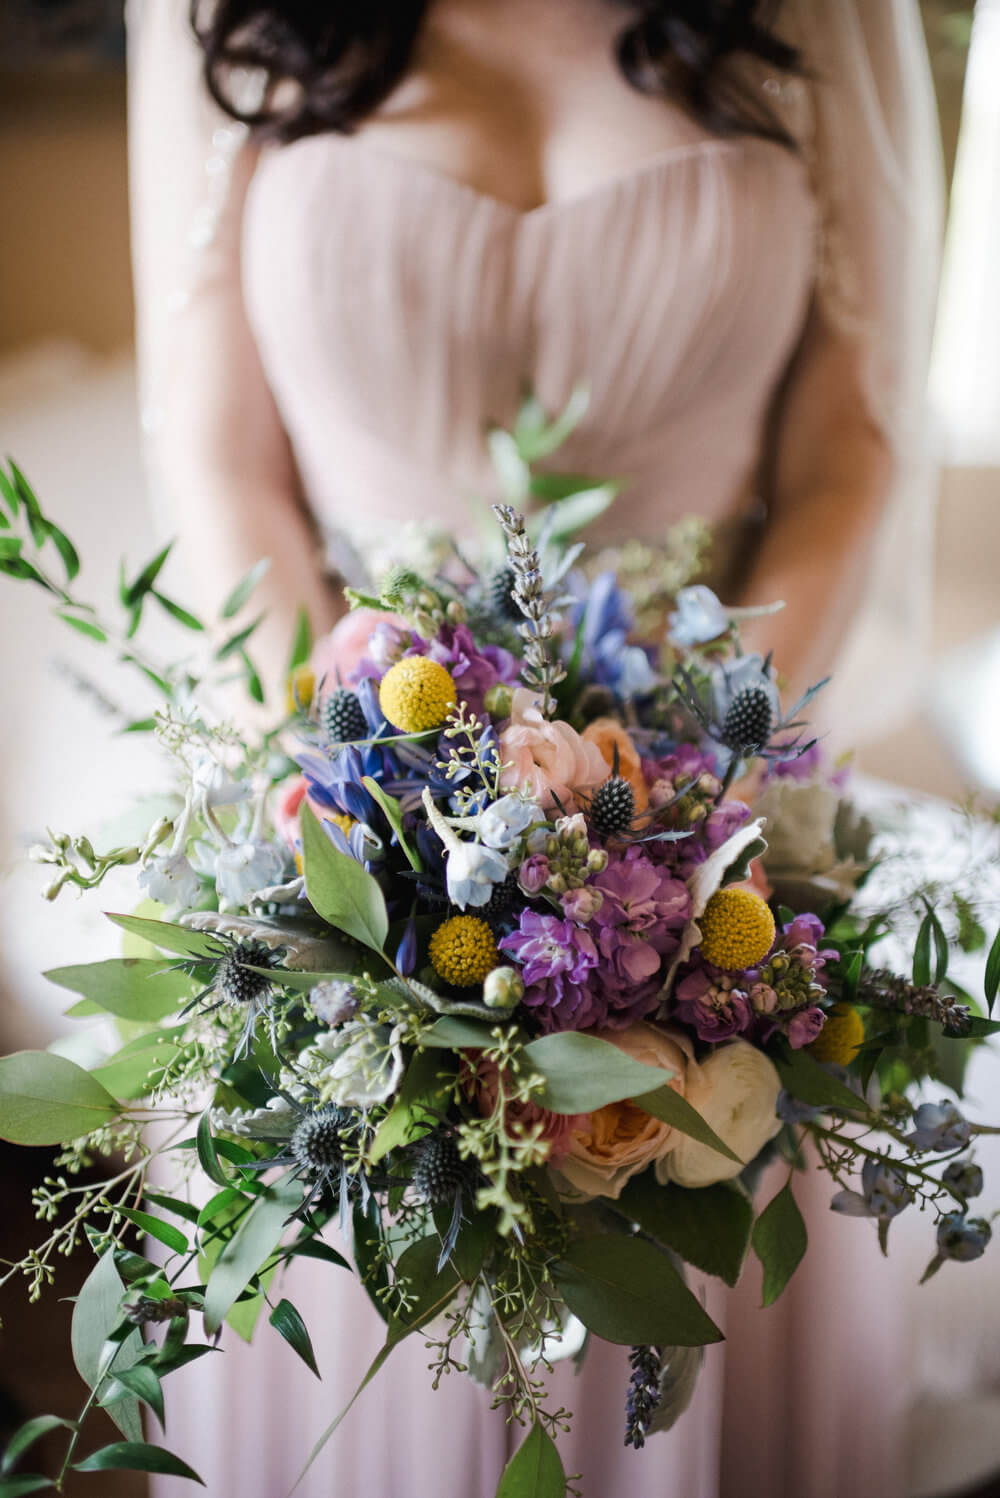 French country wedding inspiration floral bouquet with pink wedding dress.